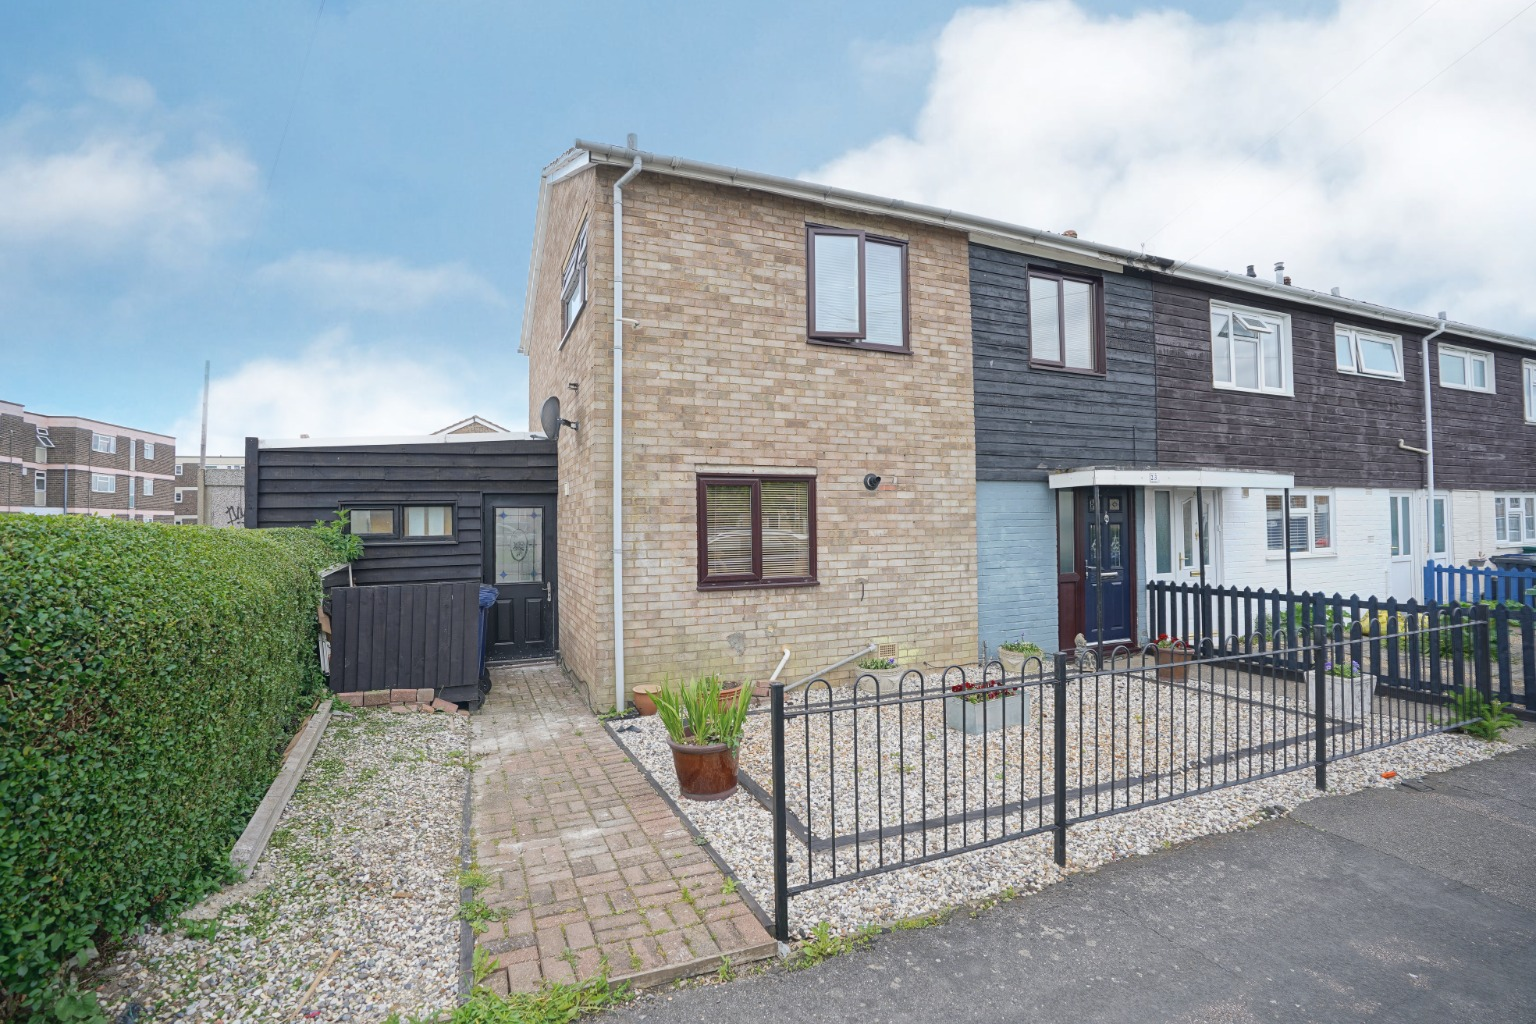 3 bed terraced house for sale in Wintringham Road, St. Neots 0